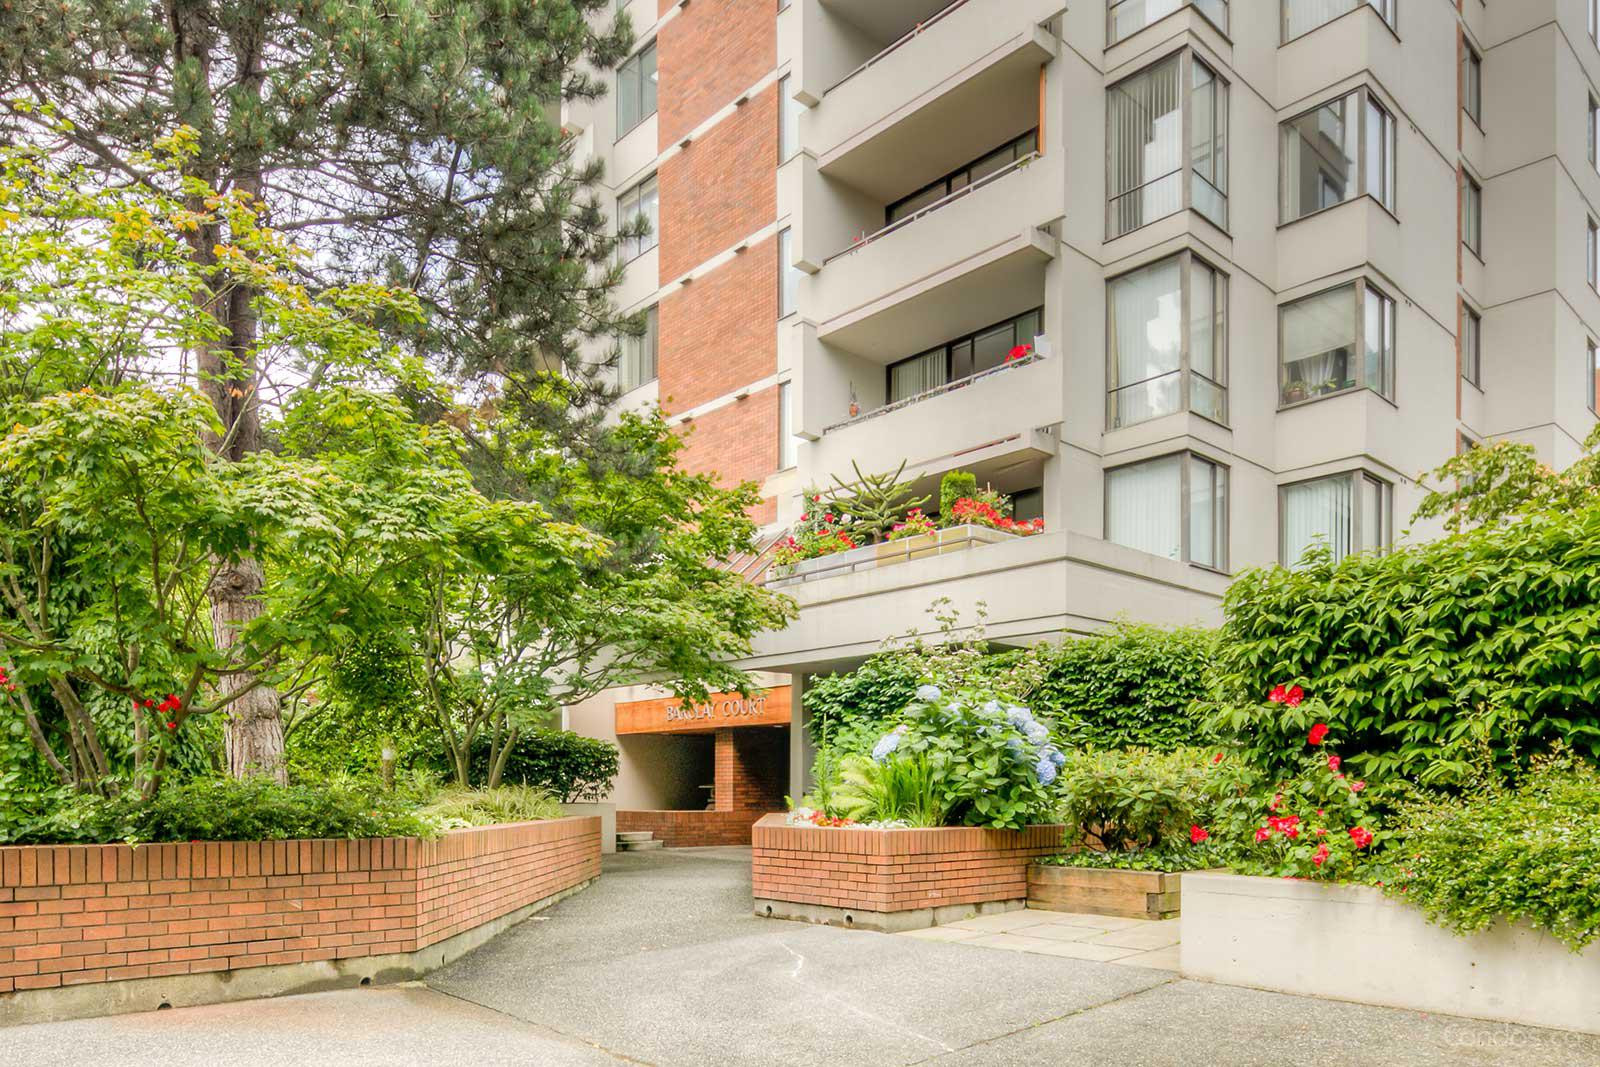 Barclay Court at 1127 Barclay St, Vancouver 1